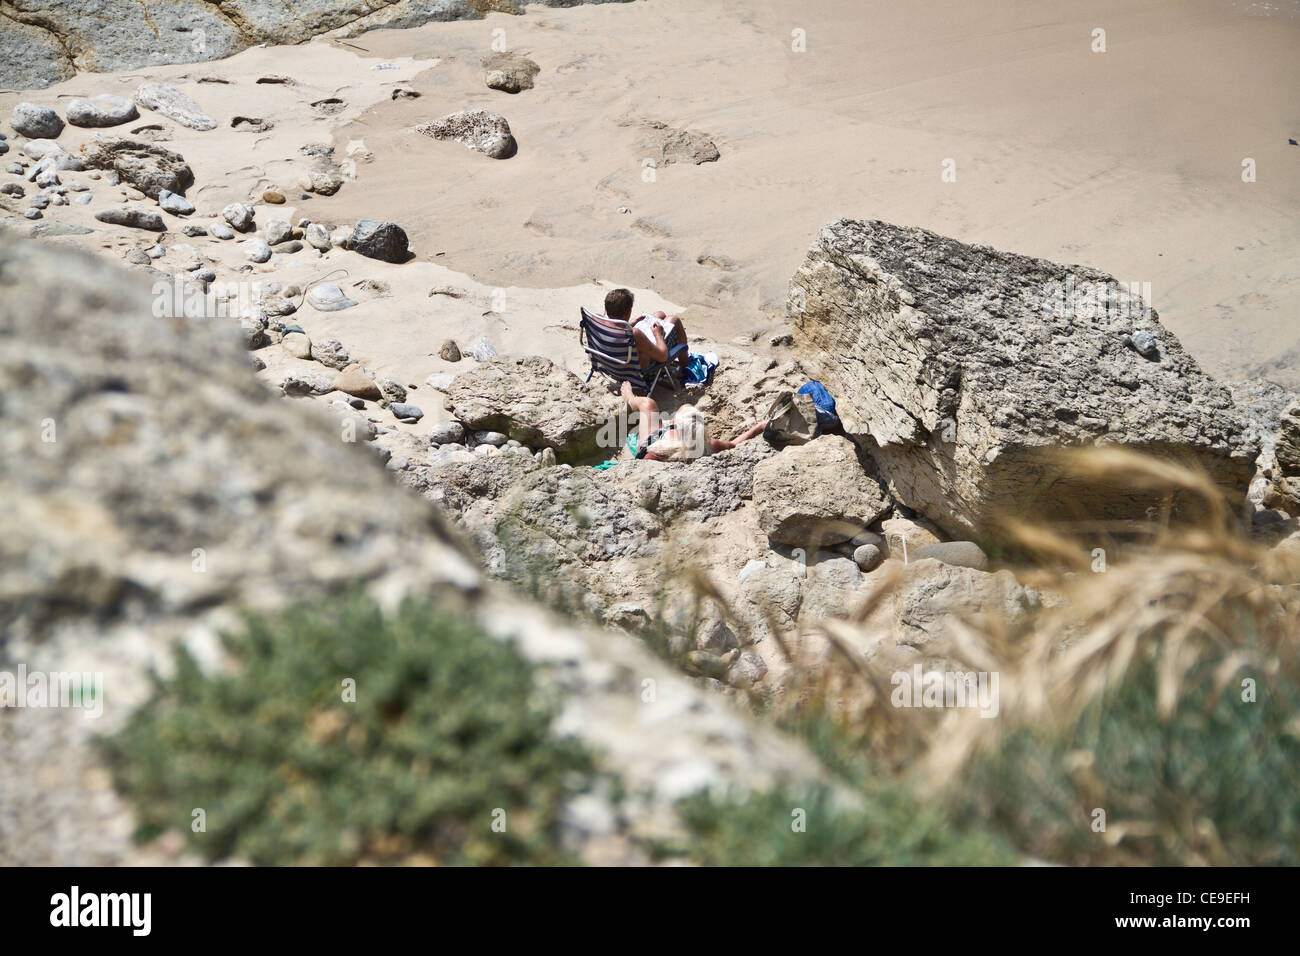 Two foreigners sunbathing in Guincho, Greater Lisbon, Portugal - Stock Image